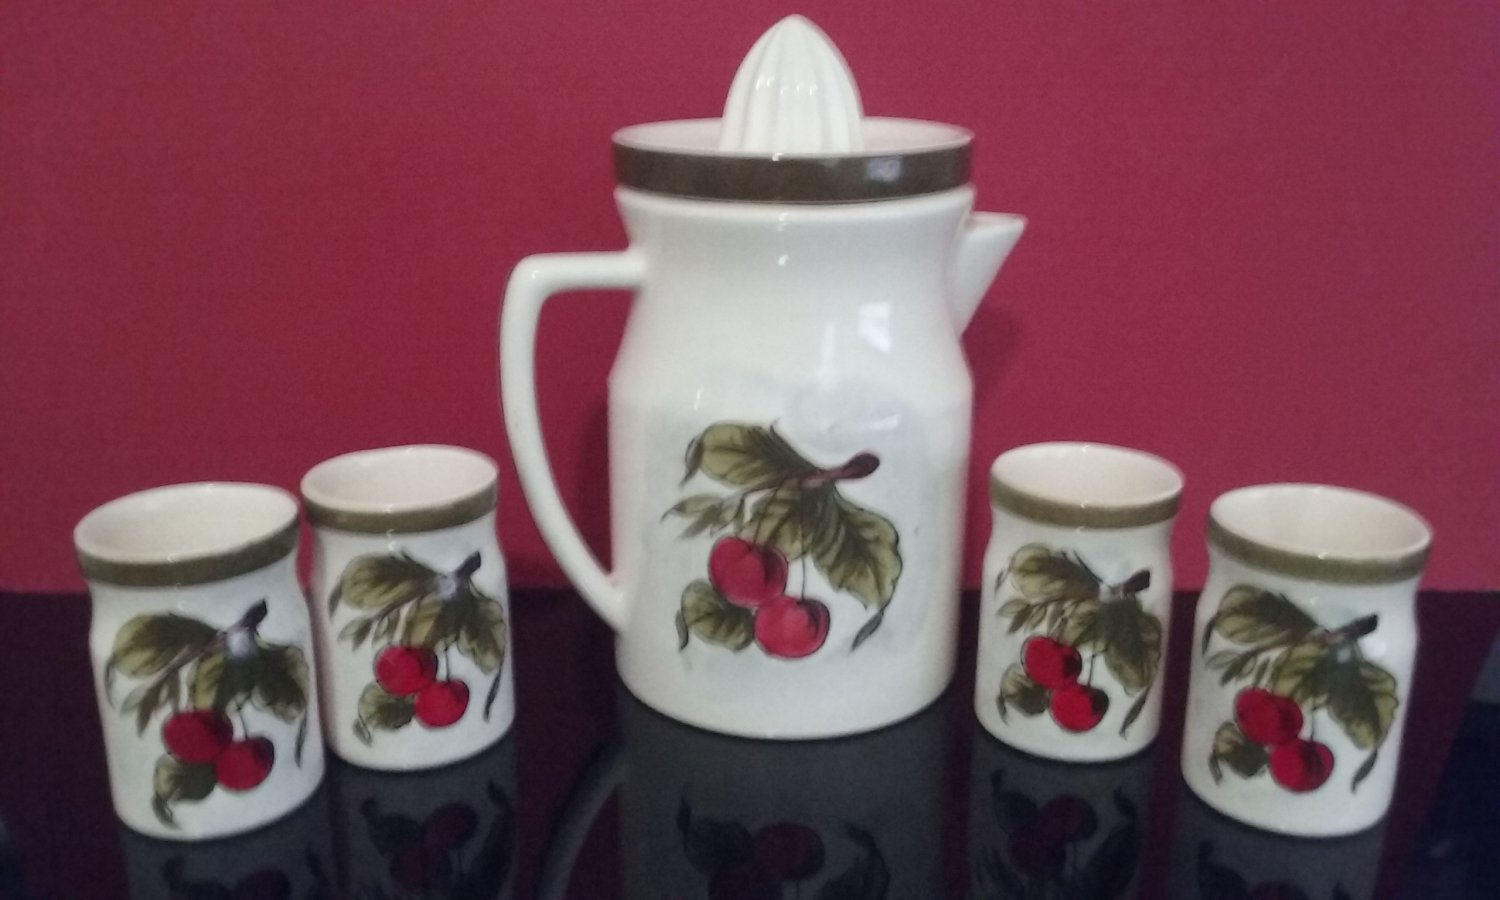 Vintage  - Pitcher With Juicer & 4 Cups - Cherry-Cherry - By Gift Ideas Creations Phila PA.